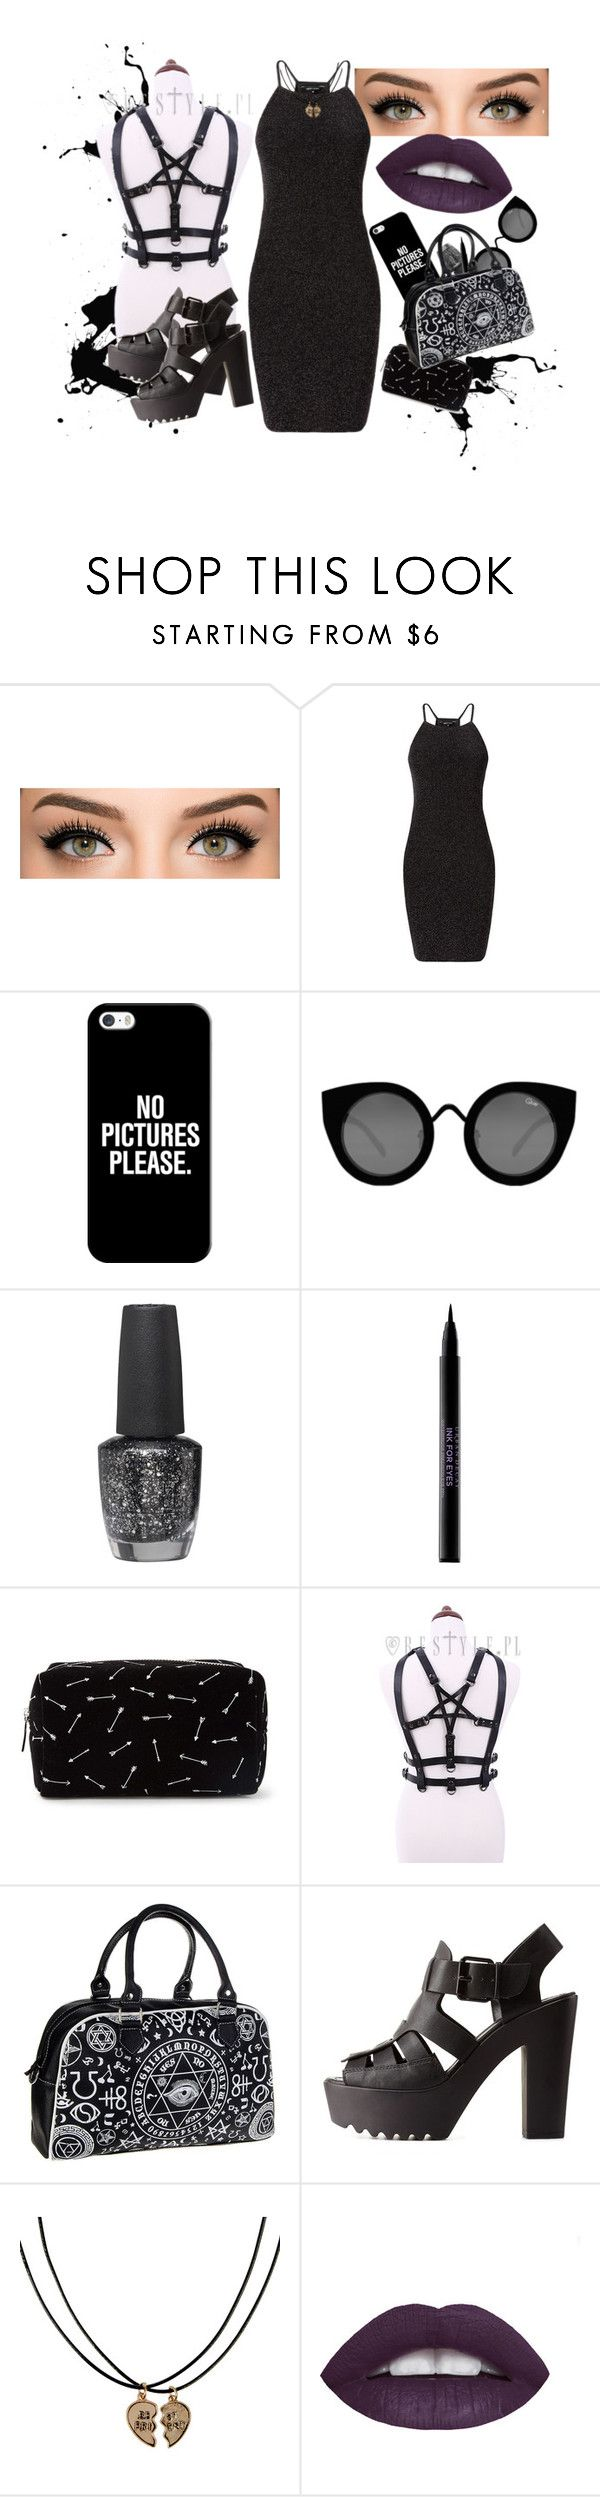 """New Years Eve"" by gmolina8 on Polyvore featuring Casetify, Quay, OPI, Urban Decay, Forever 21, Charlotte Russe and Monsoon"